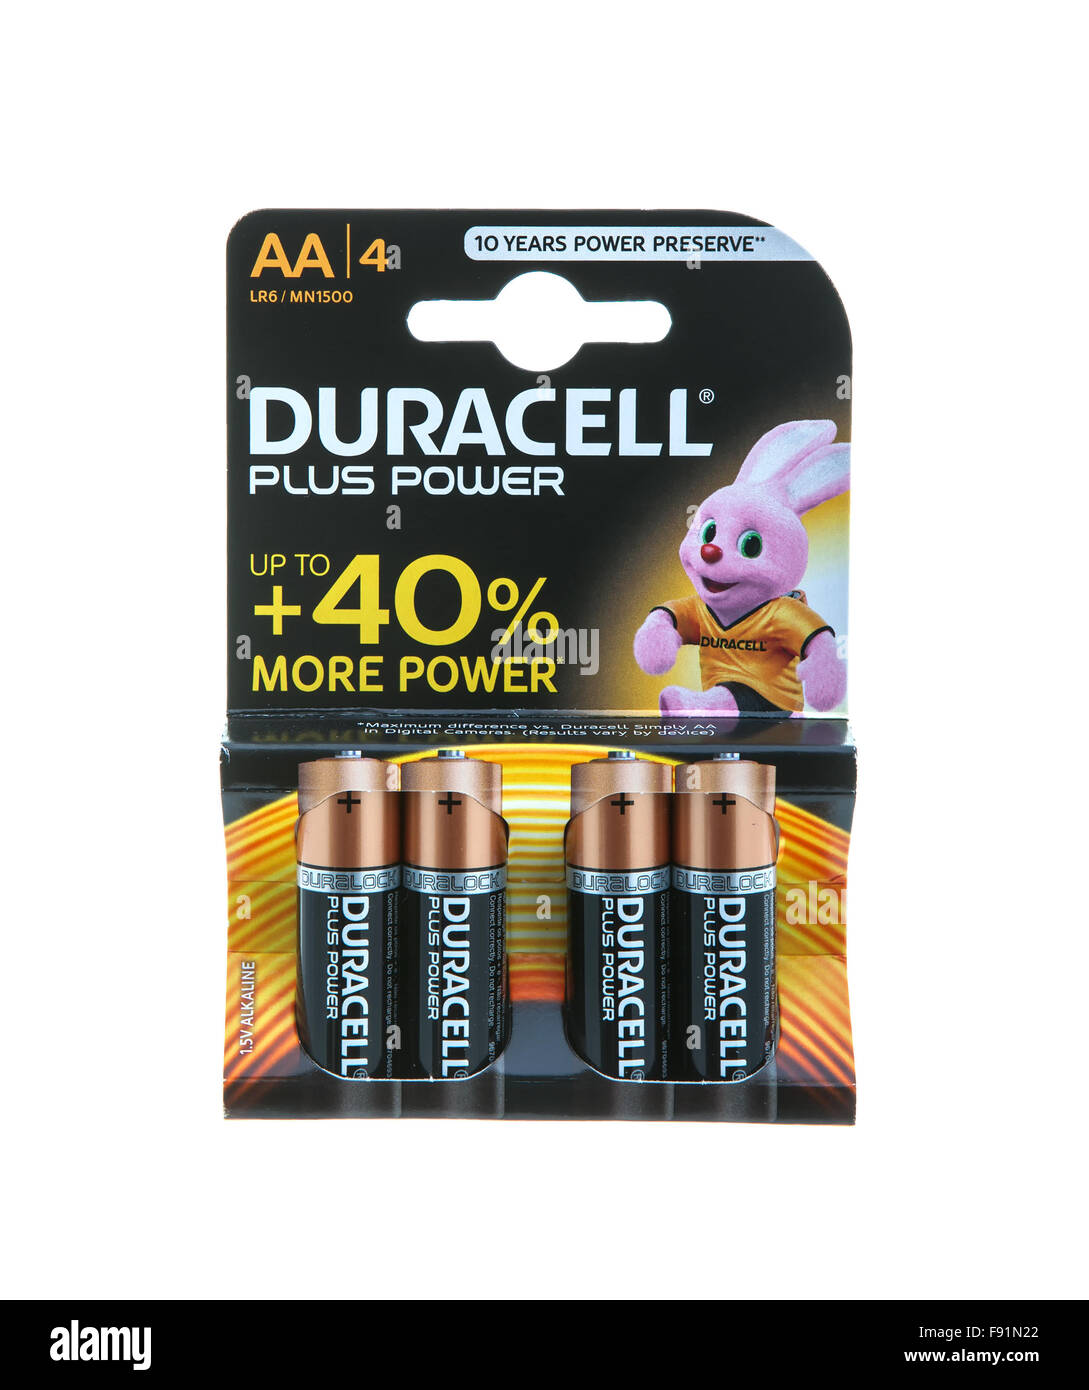 Pack of Duracell  AA Batteries, Duracell is an American brand of batteries and smart power solutions manufactured - Stock Image